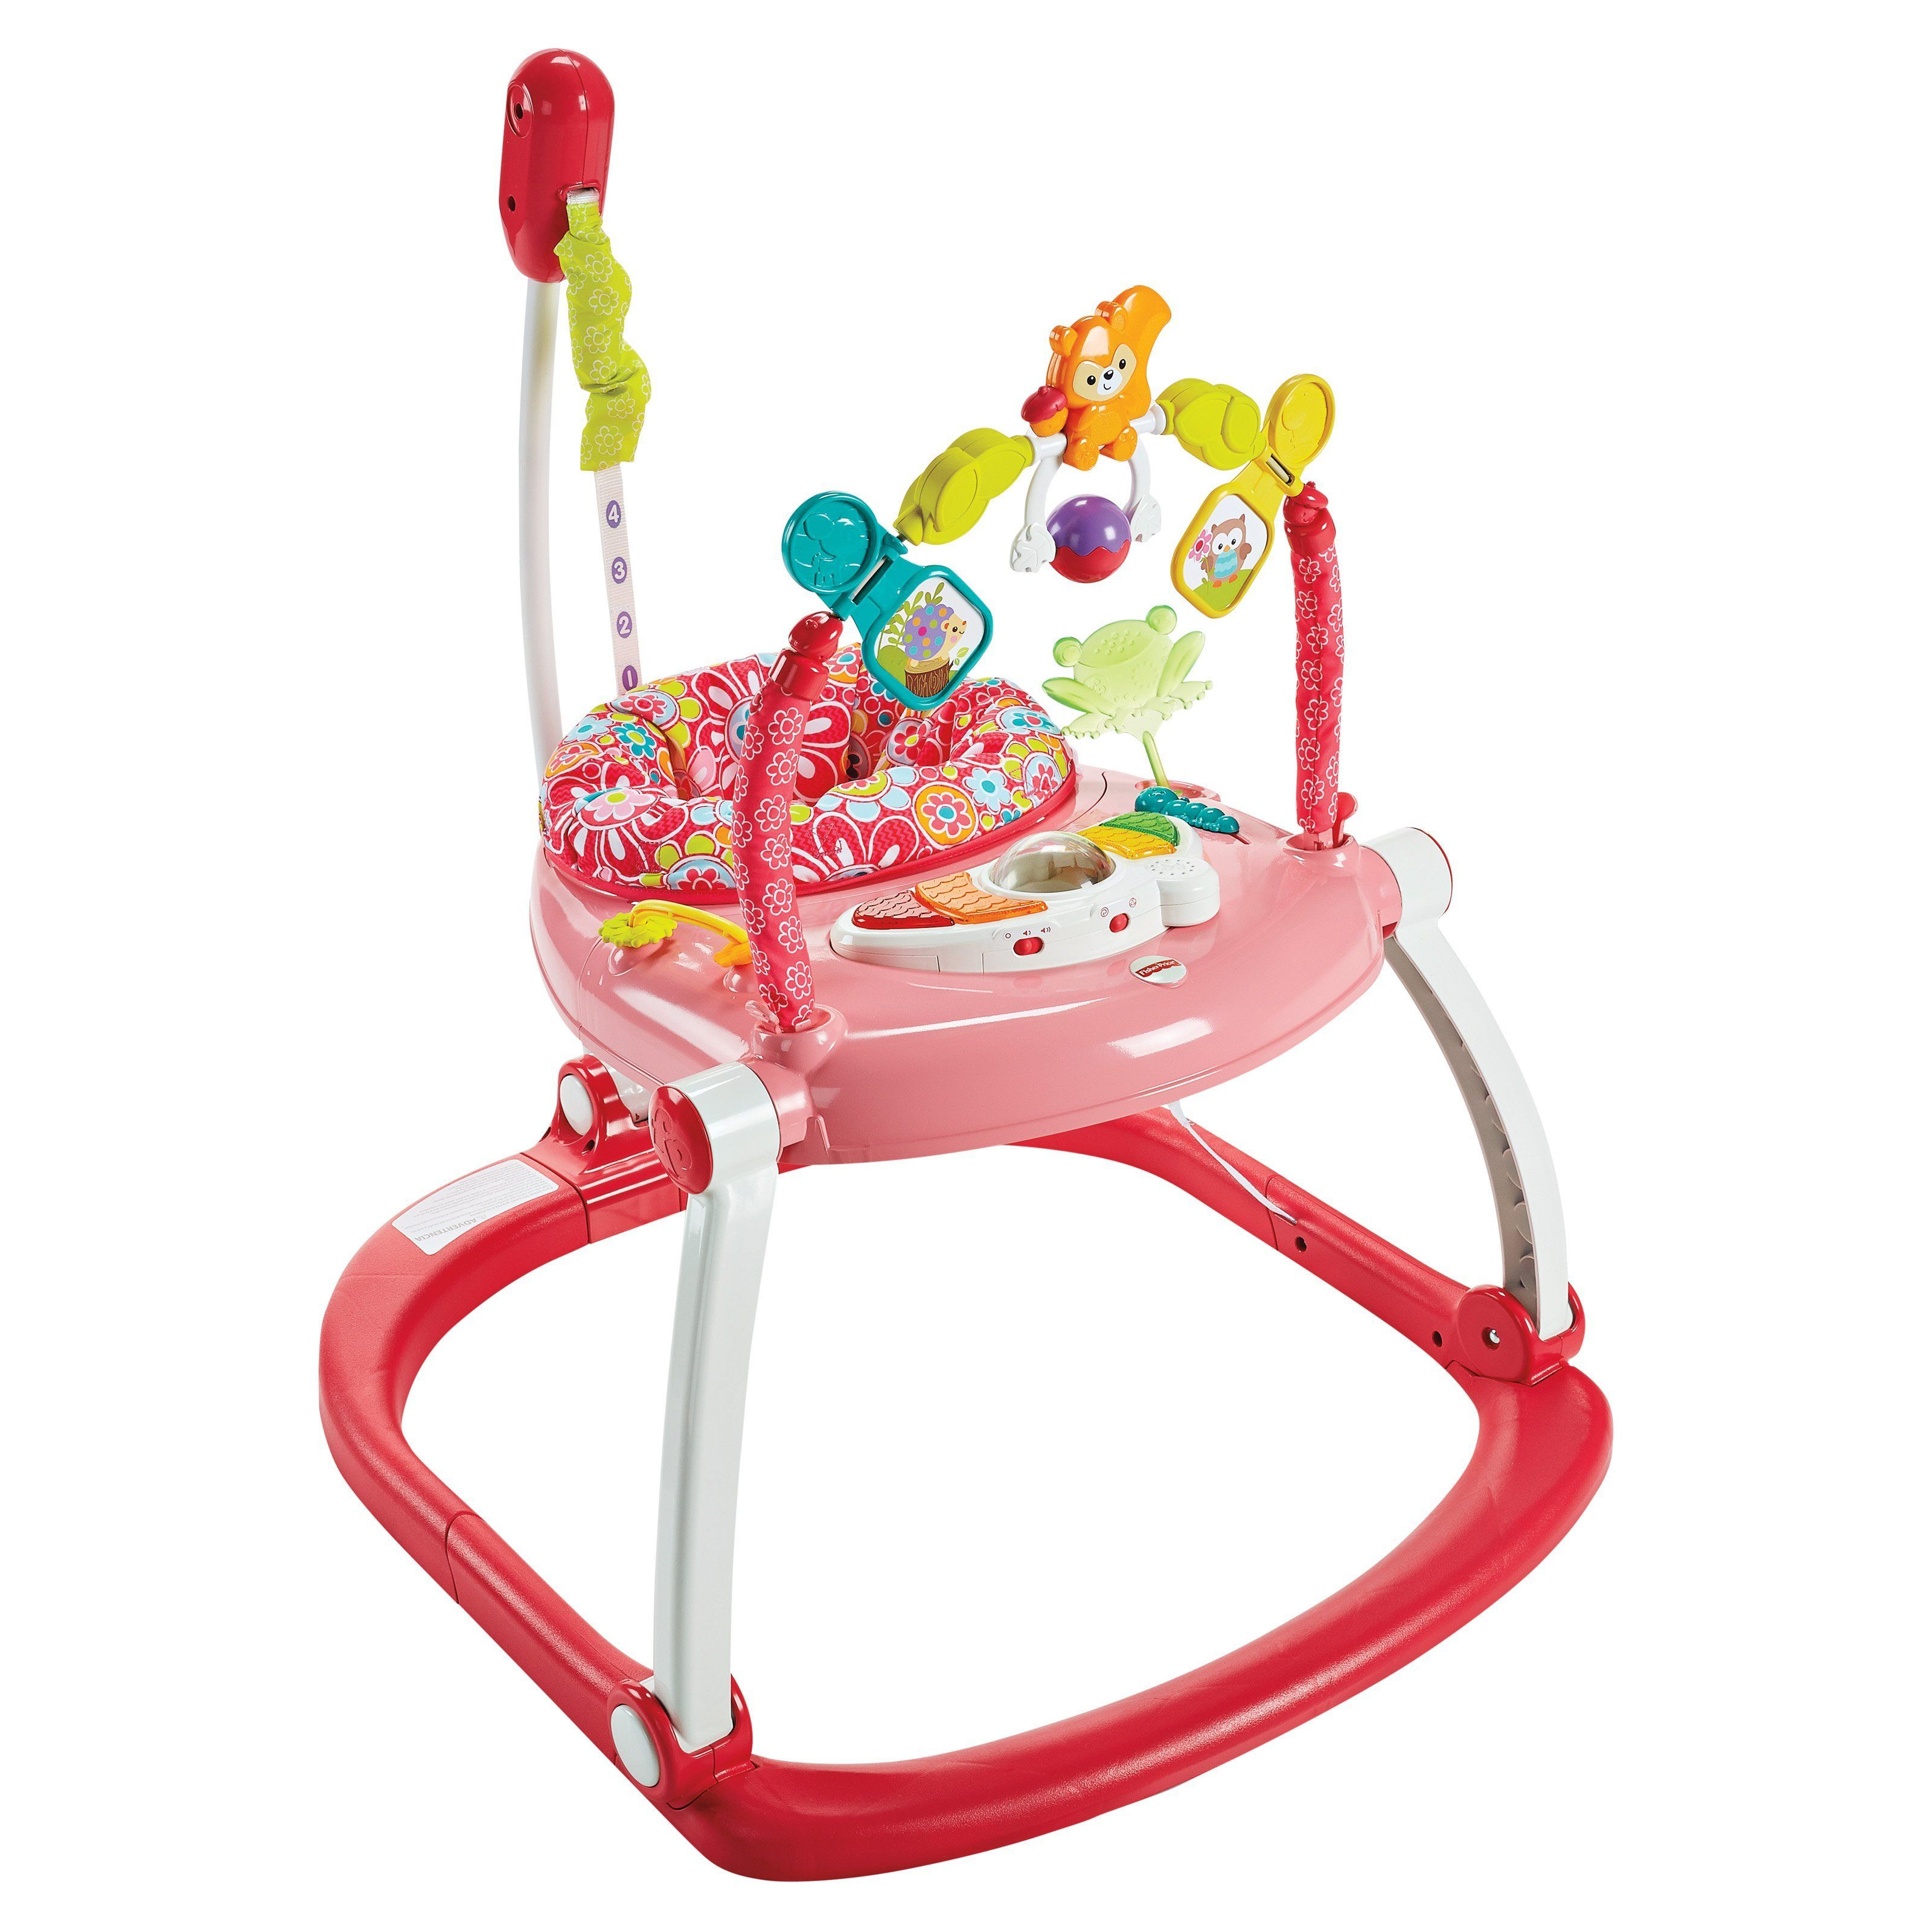 Fisherprice floral confetti spacesaver jumperoo dkt products